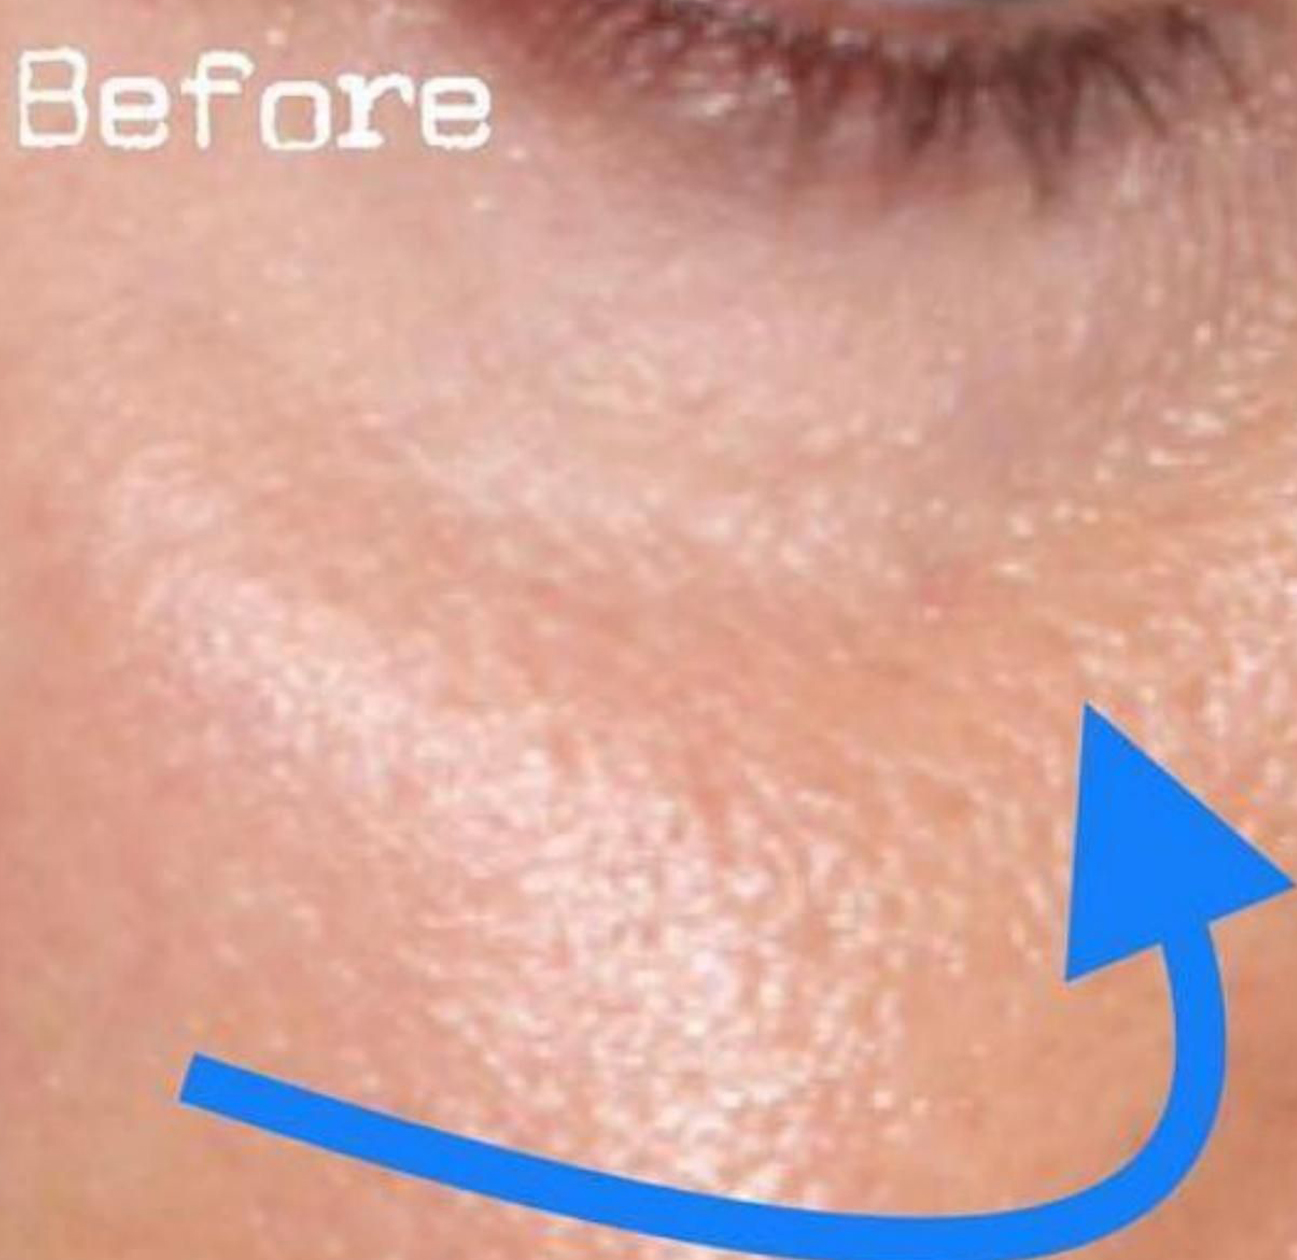 Before Nonsurgical Under Eye Hollow